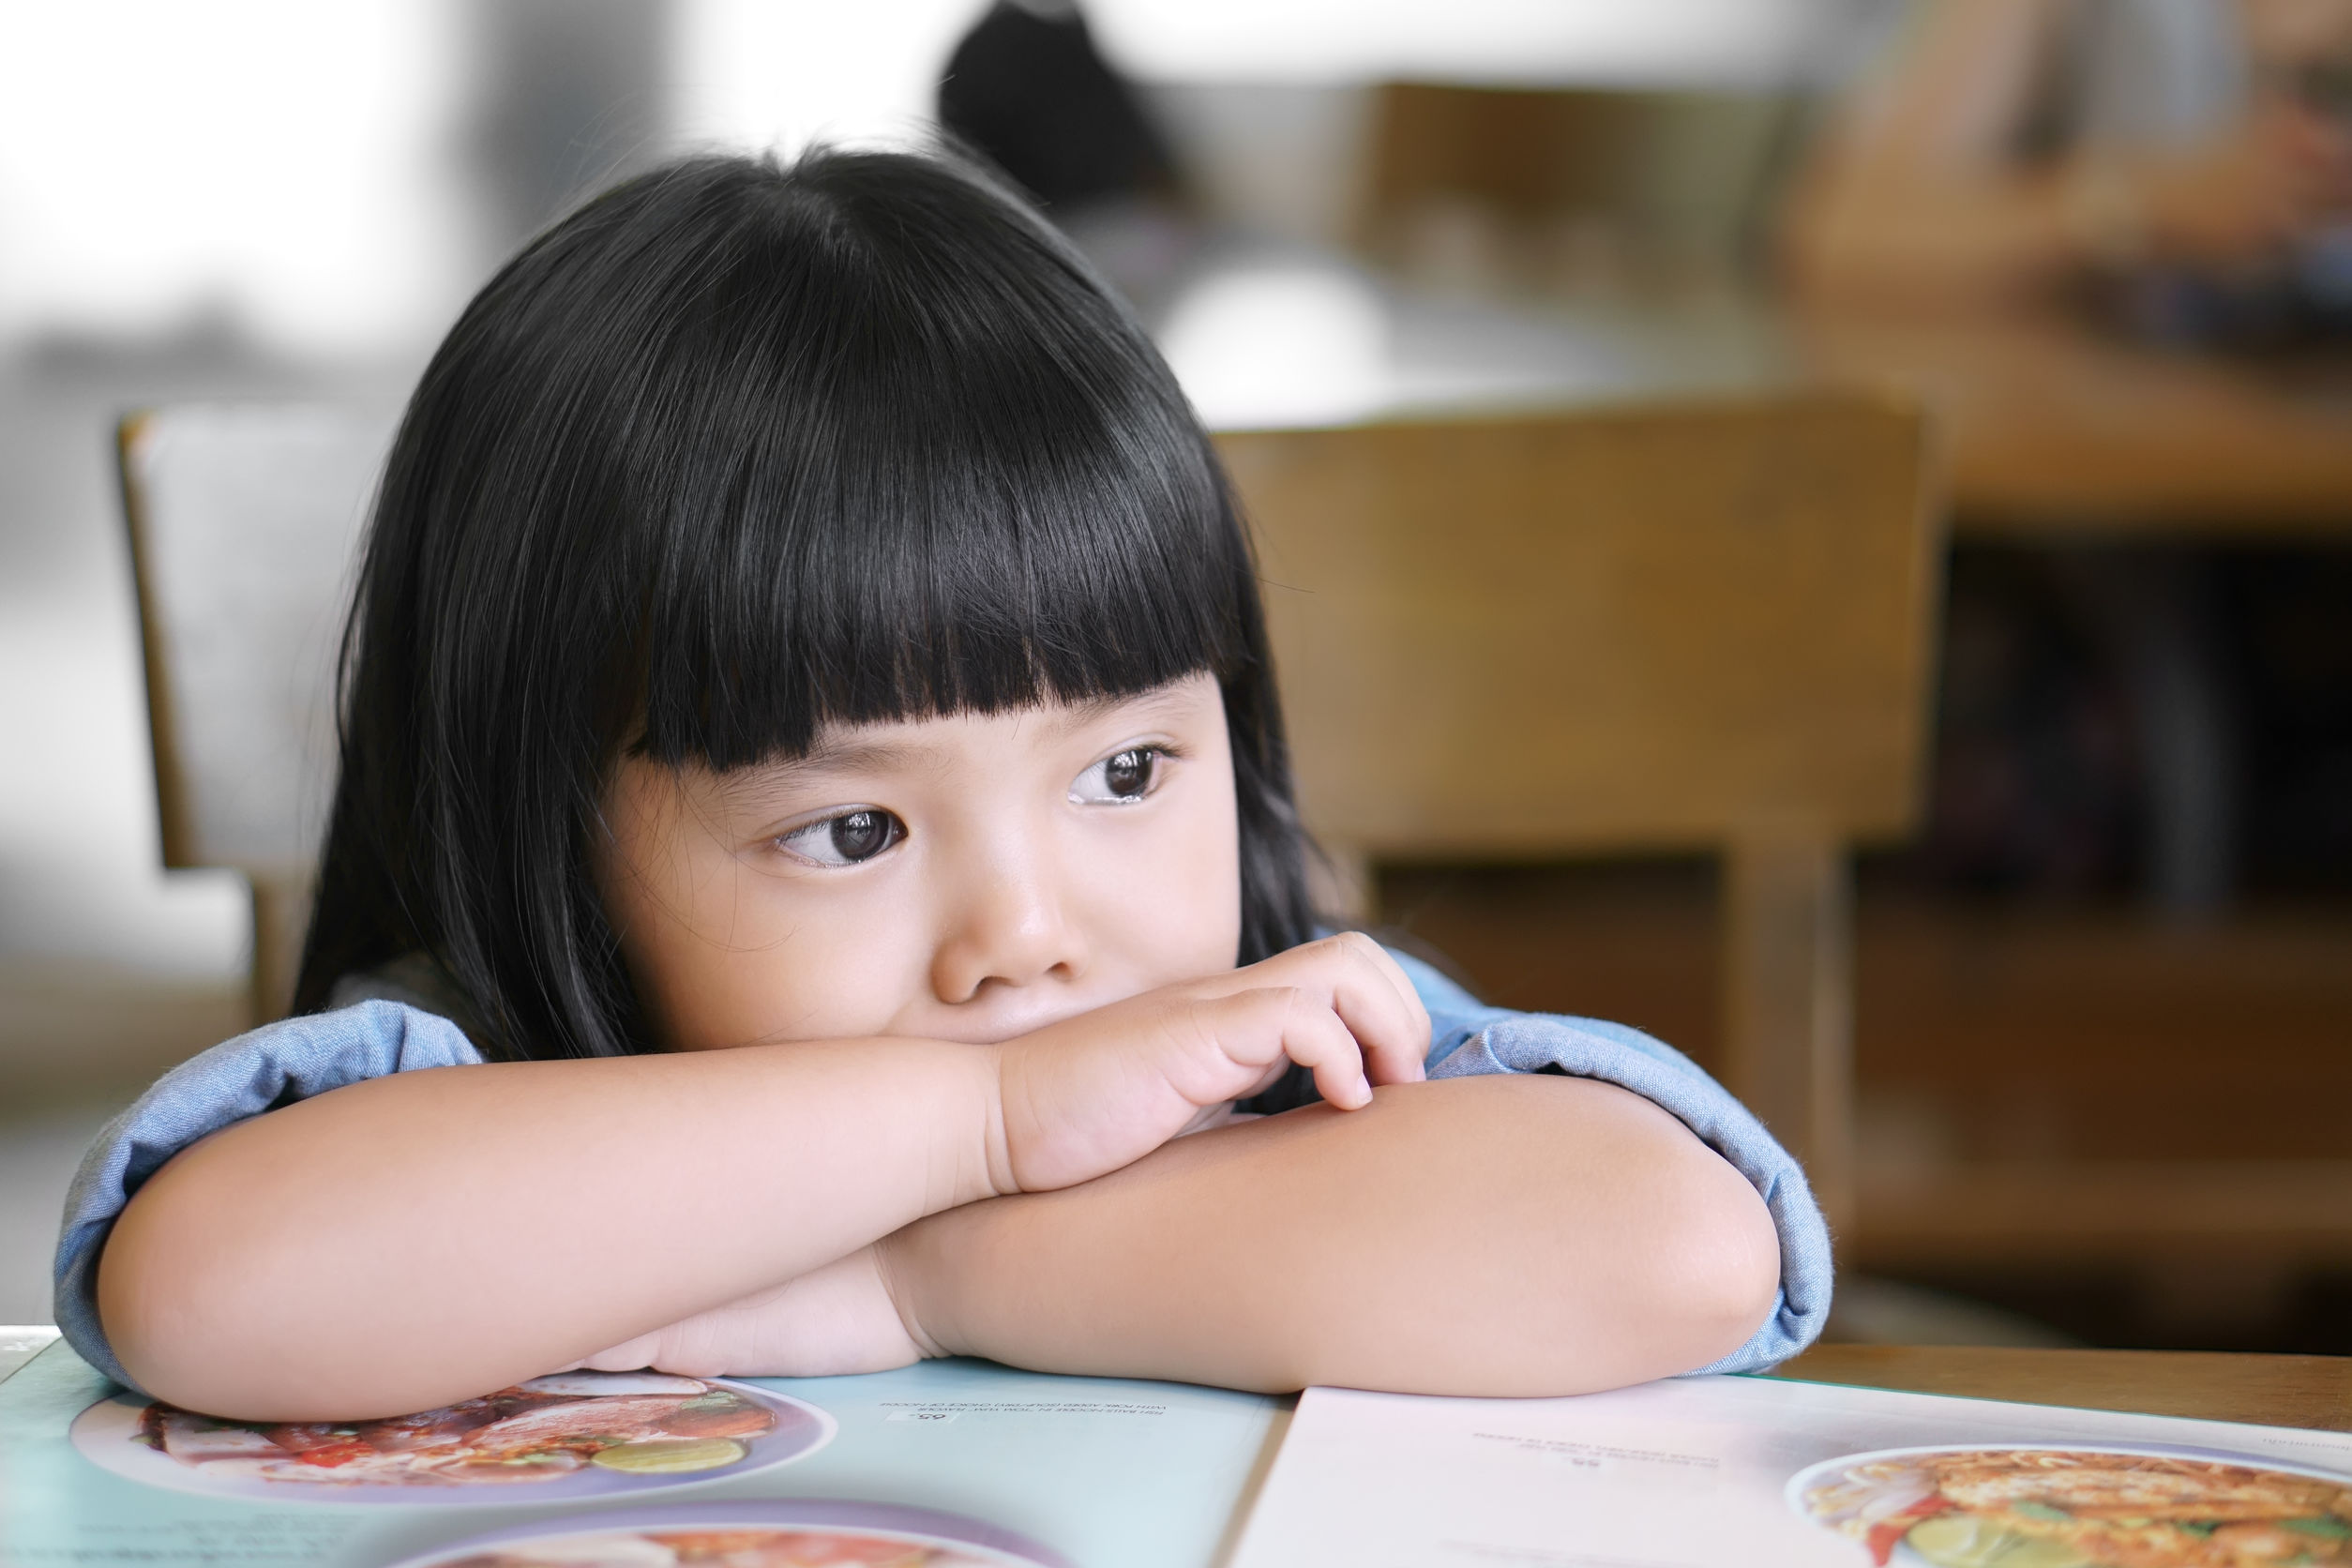 Child Suffering From Mental Health